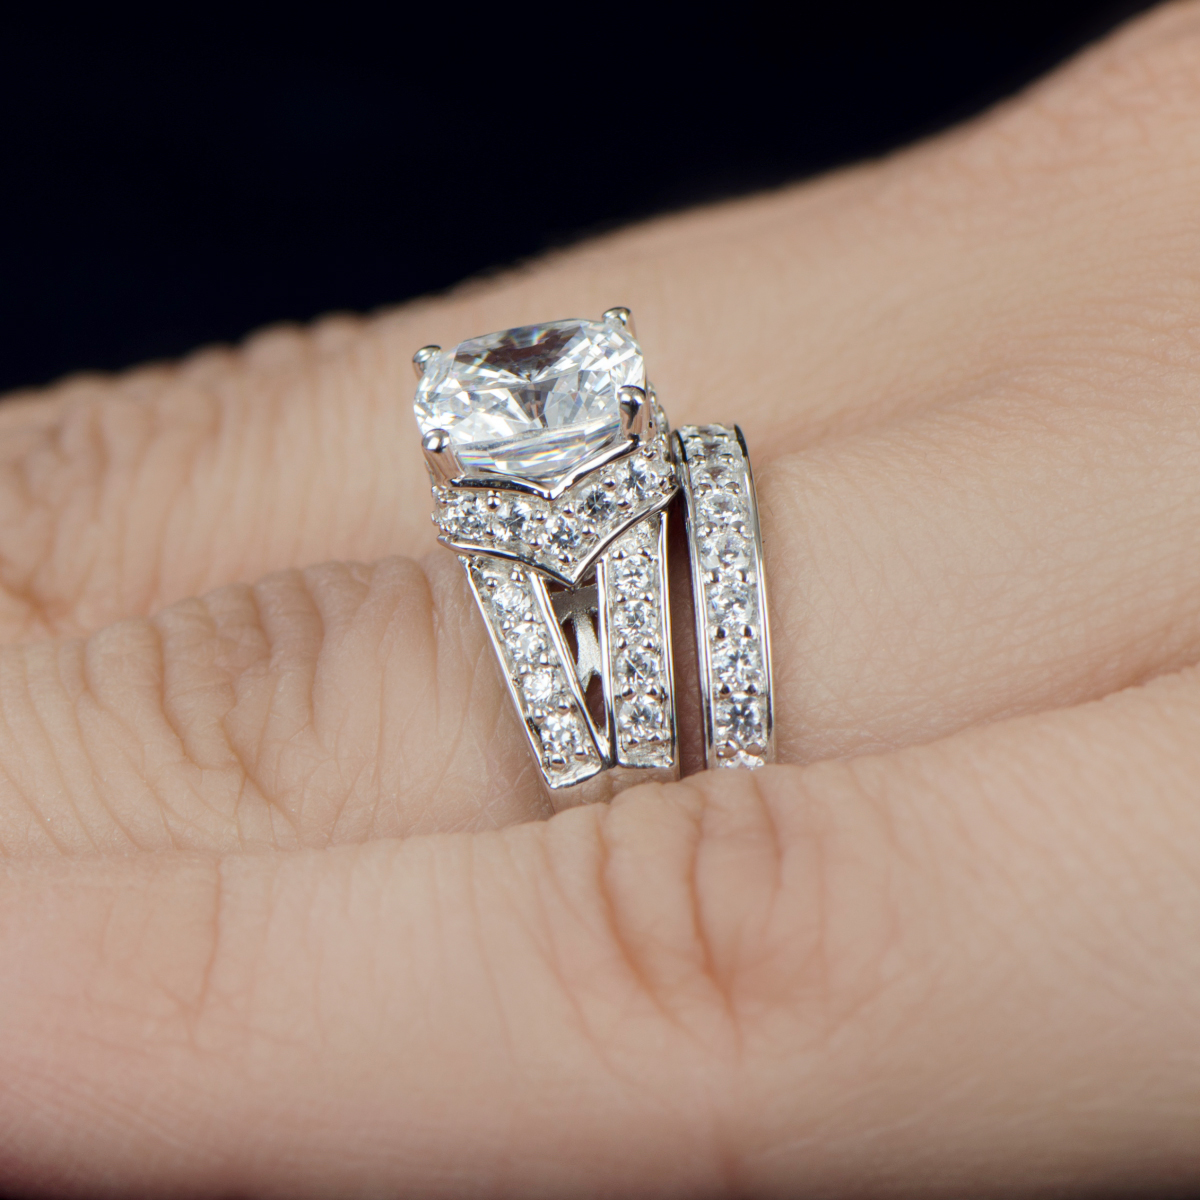 marinelczengagementring engagement wedding ring sets Marinel s Wedding Ring Set Cushion Cut CZ